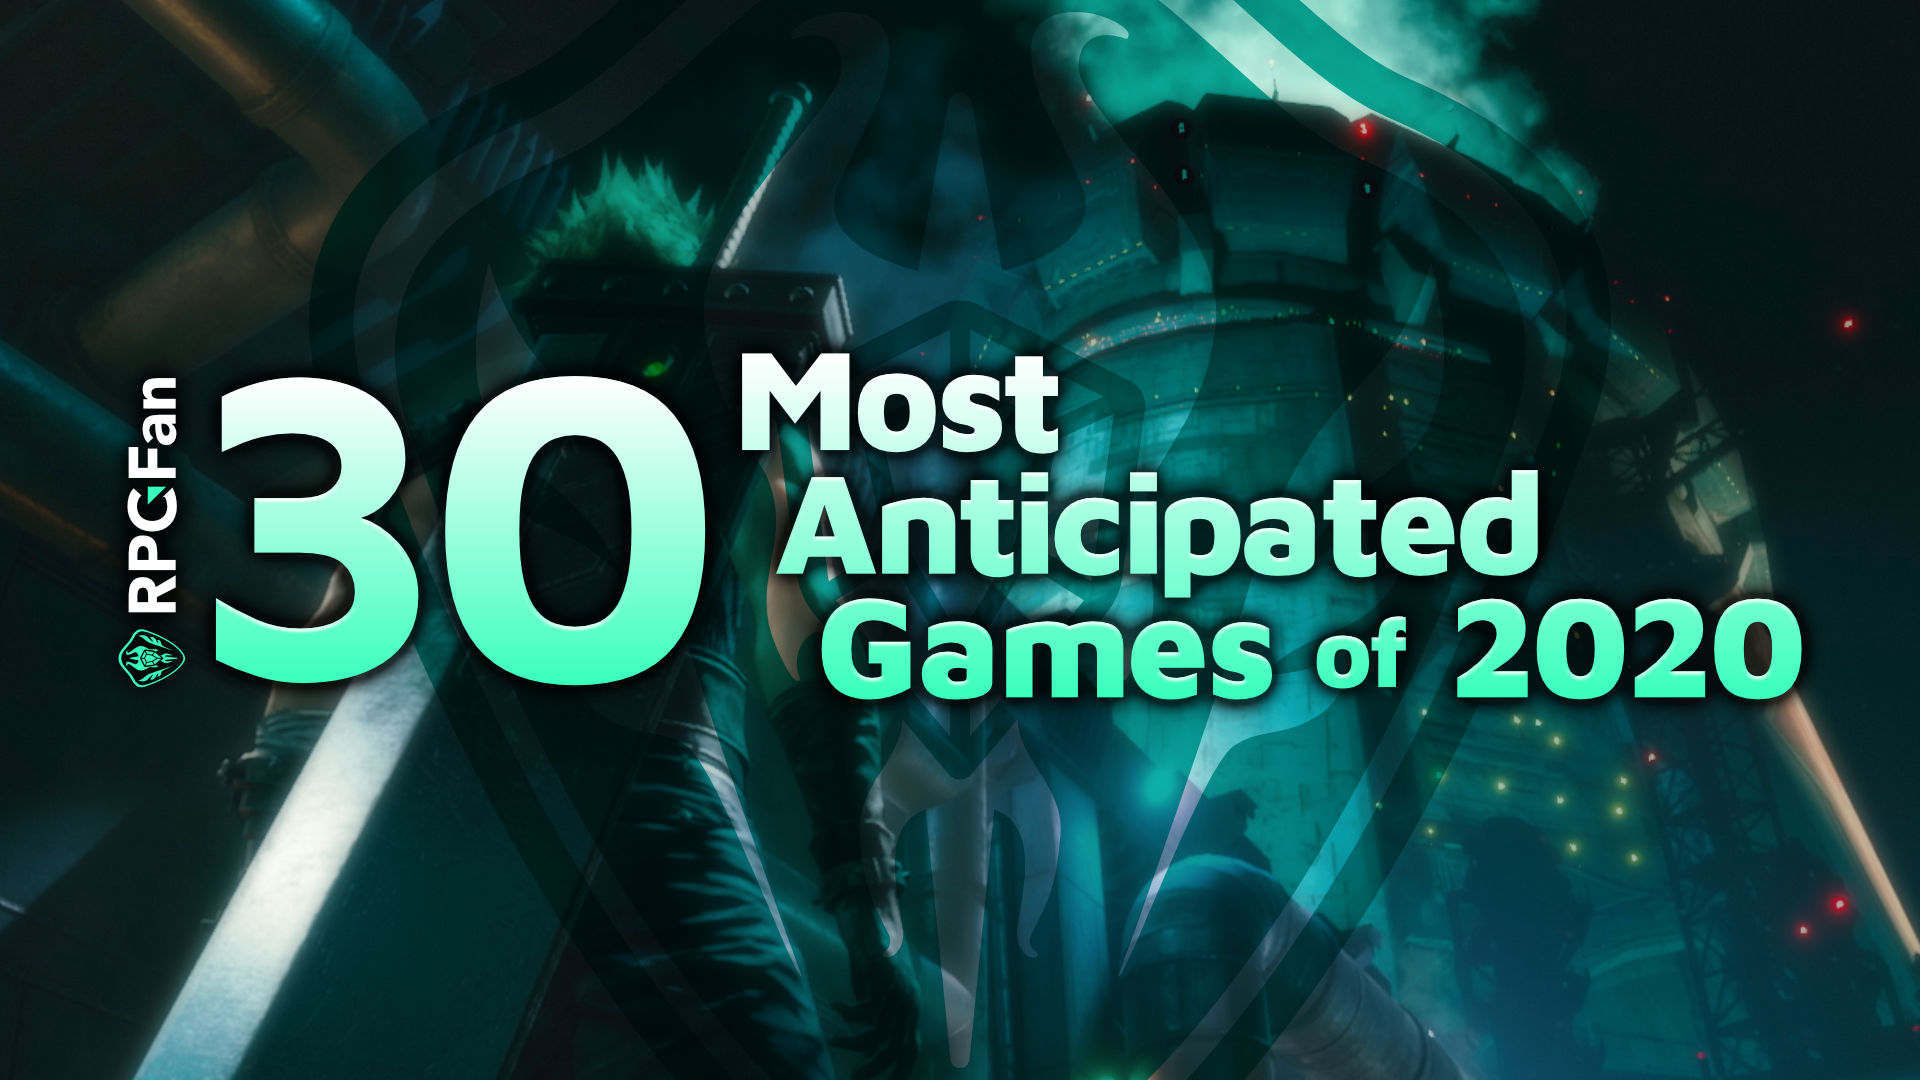 30 Most Anticipated Games of 2020 Header